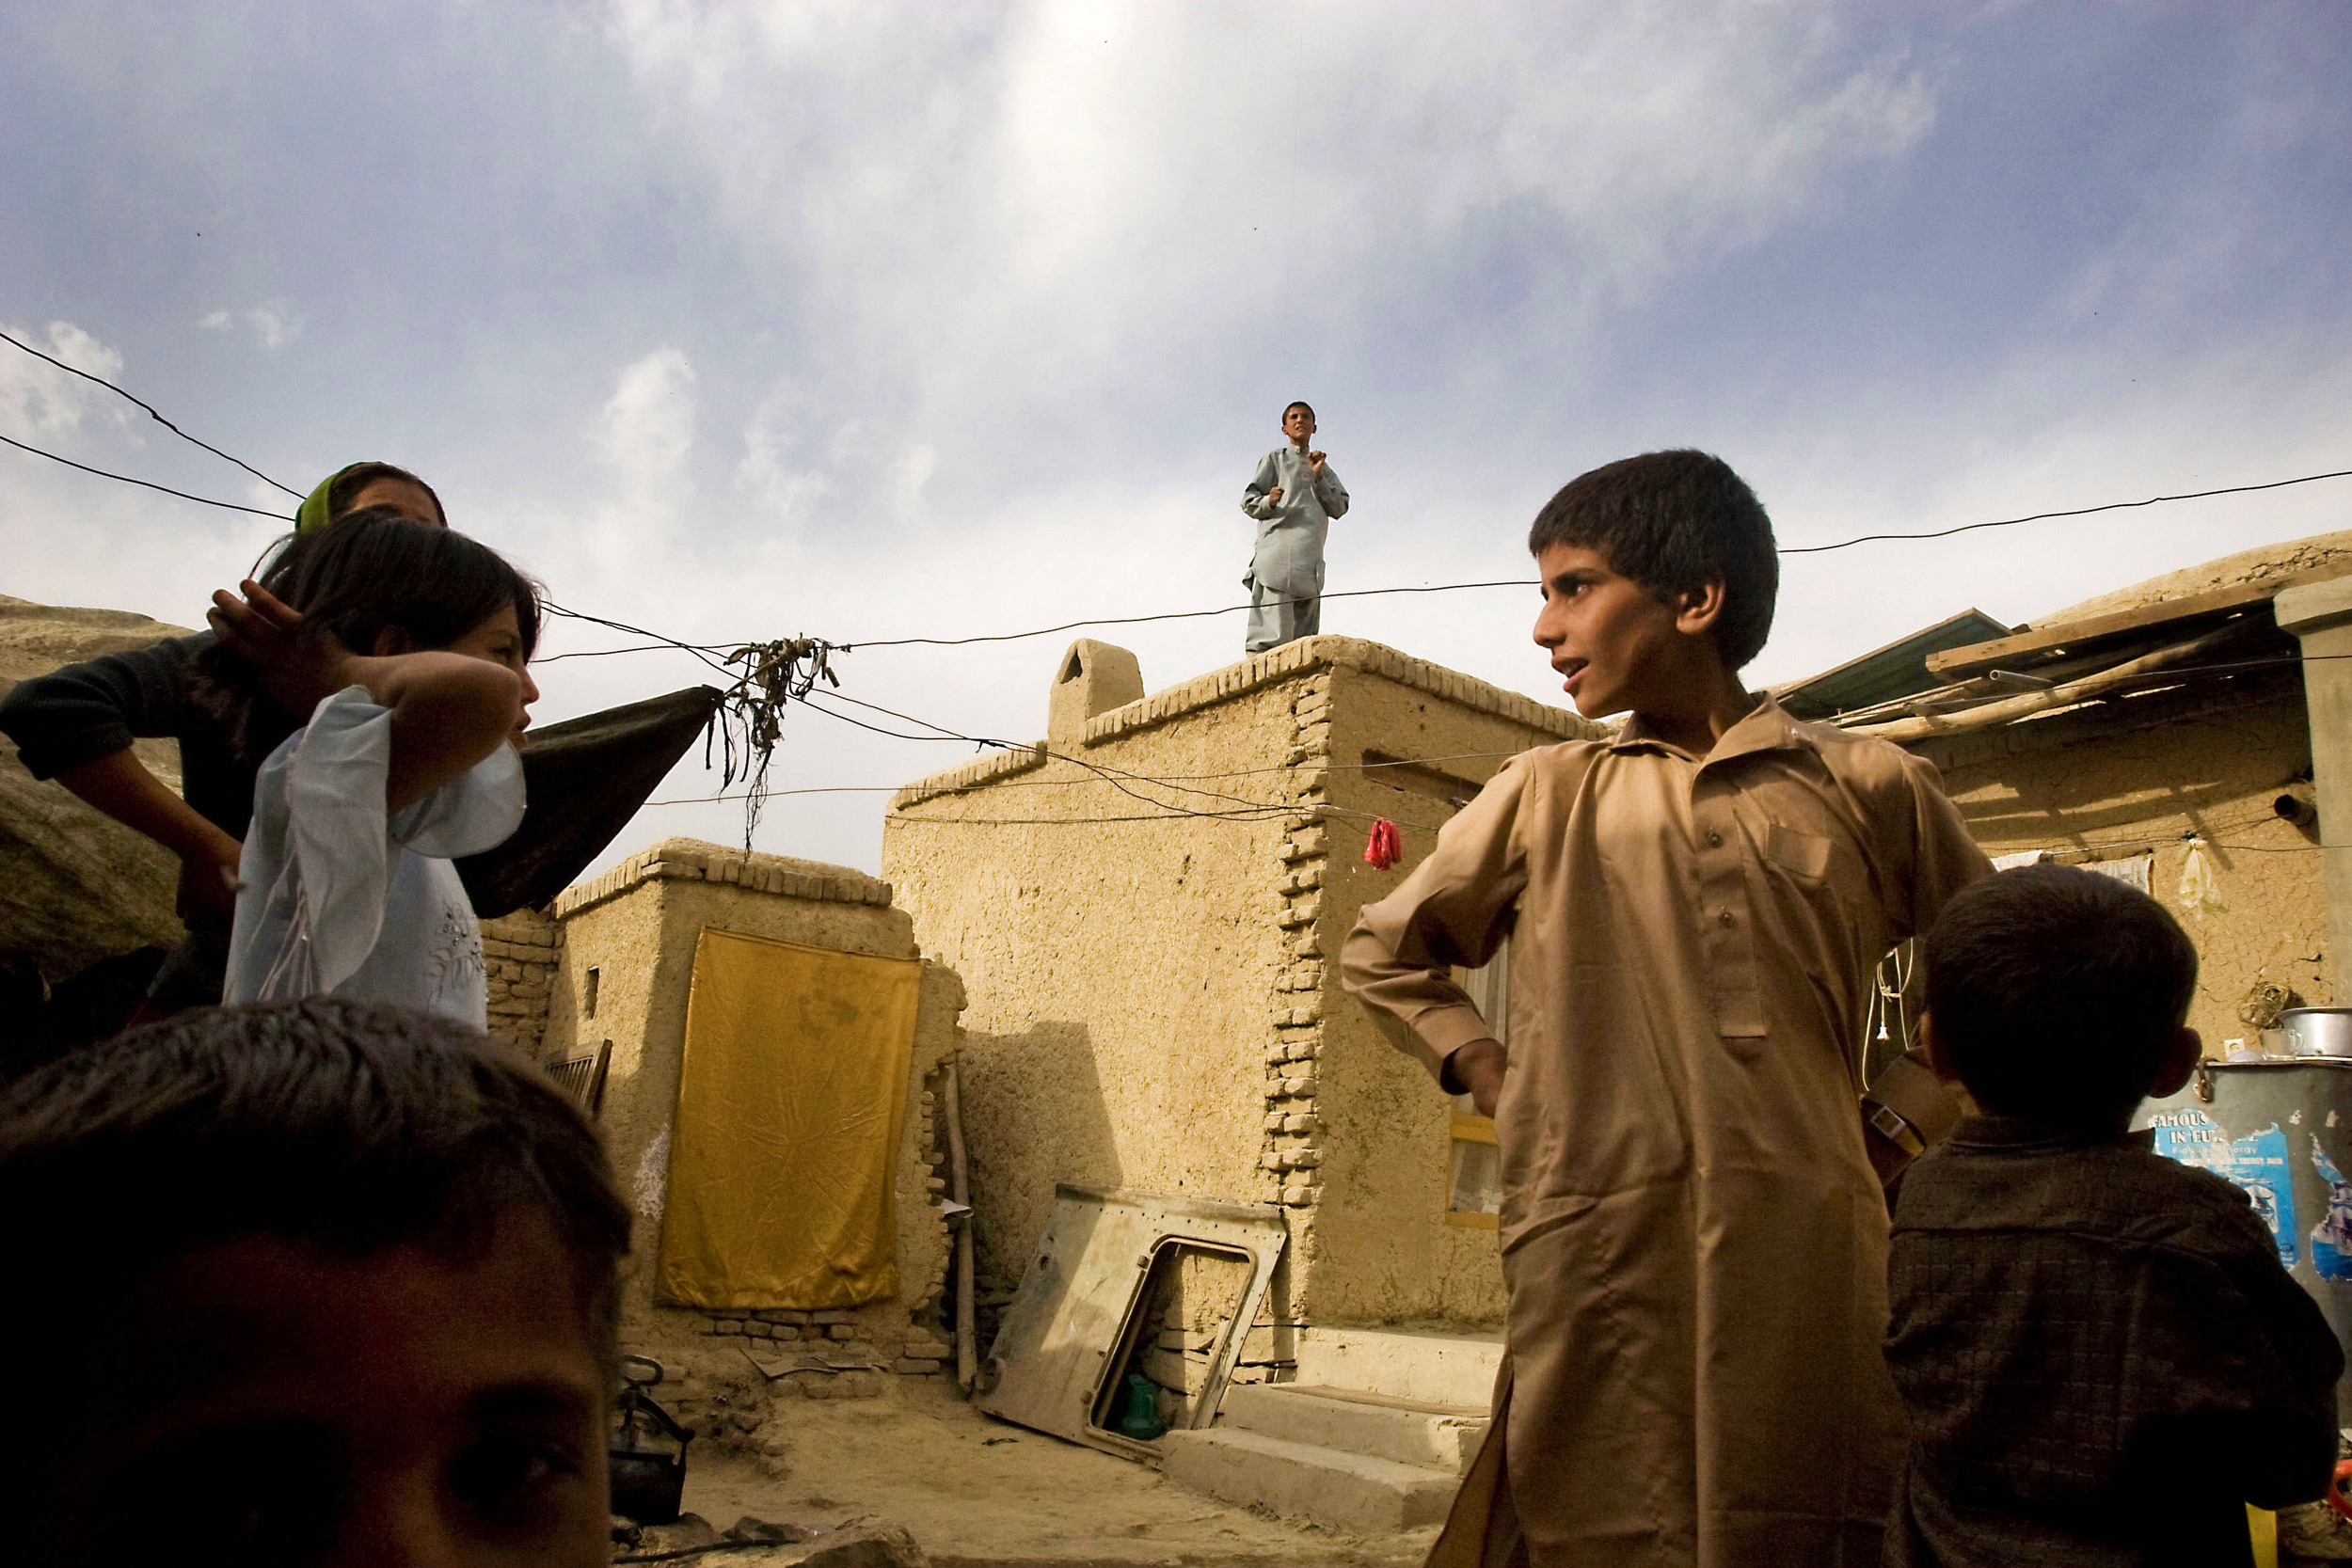 09302008AfghanistanSelects_001.jpg